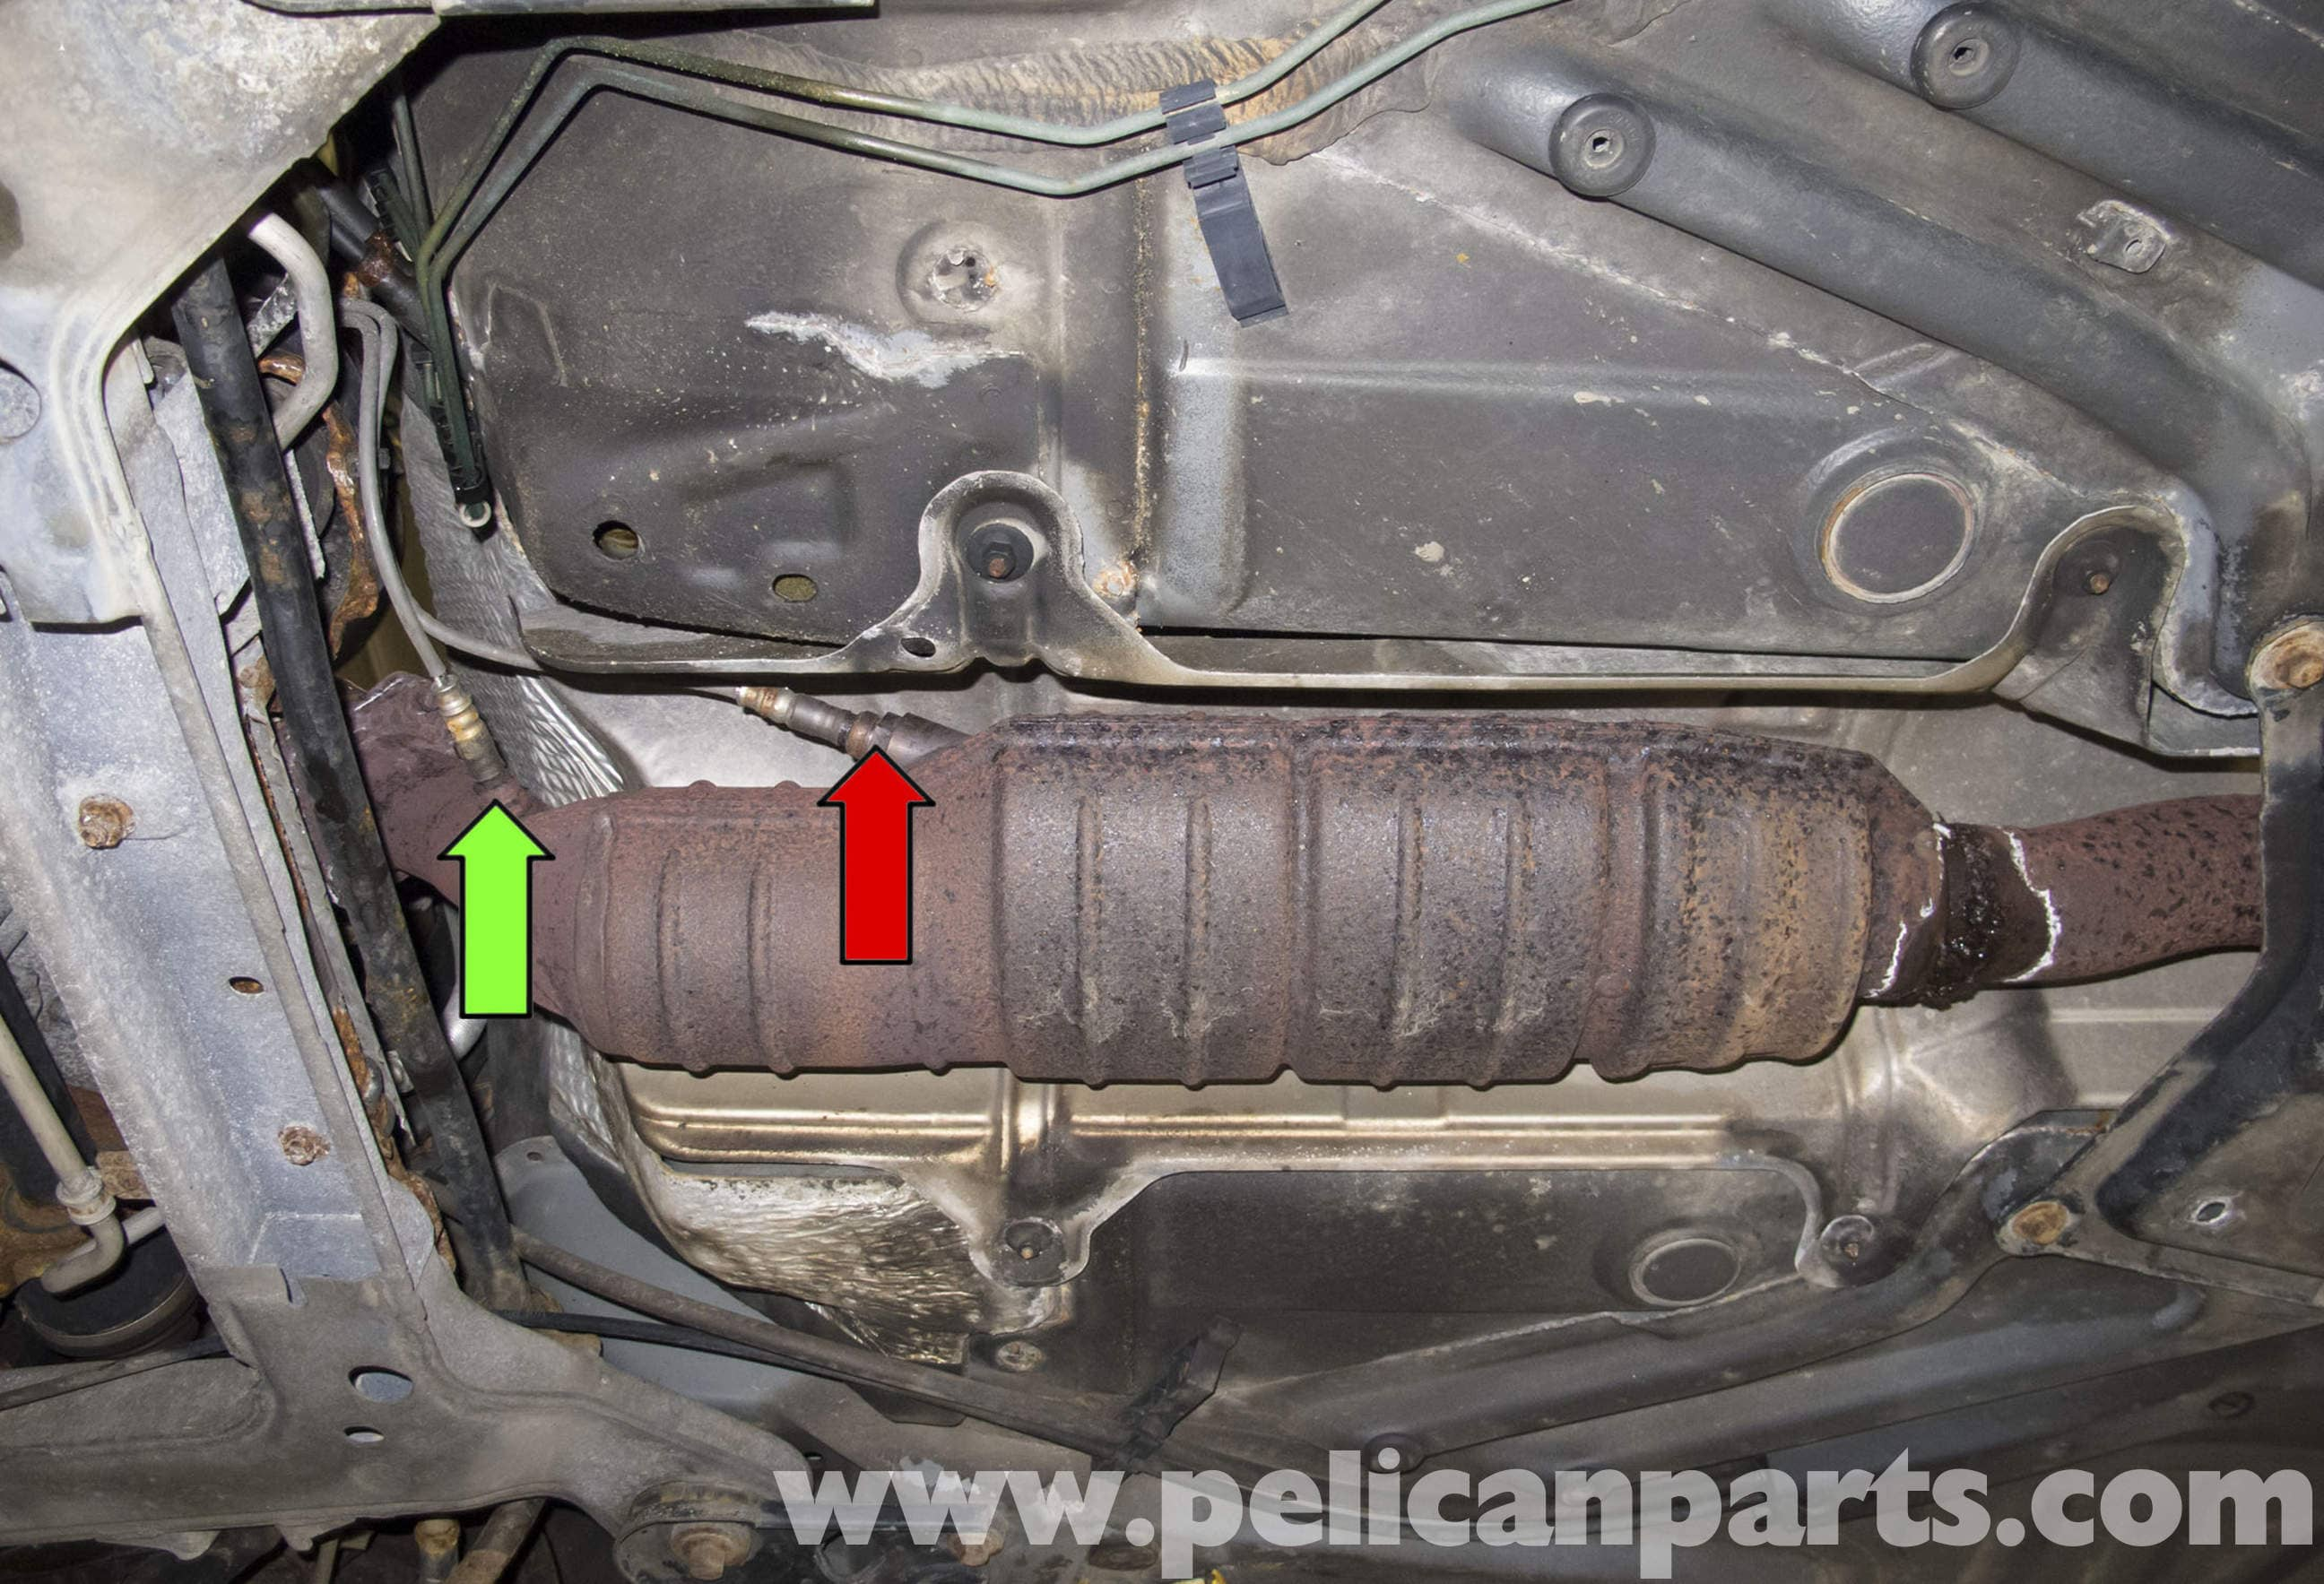 Volvo V70 Engine Management Systems (1998-2007) - Pelican Parts DIY Maintenance Article